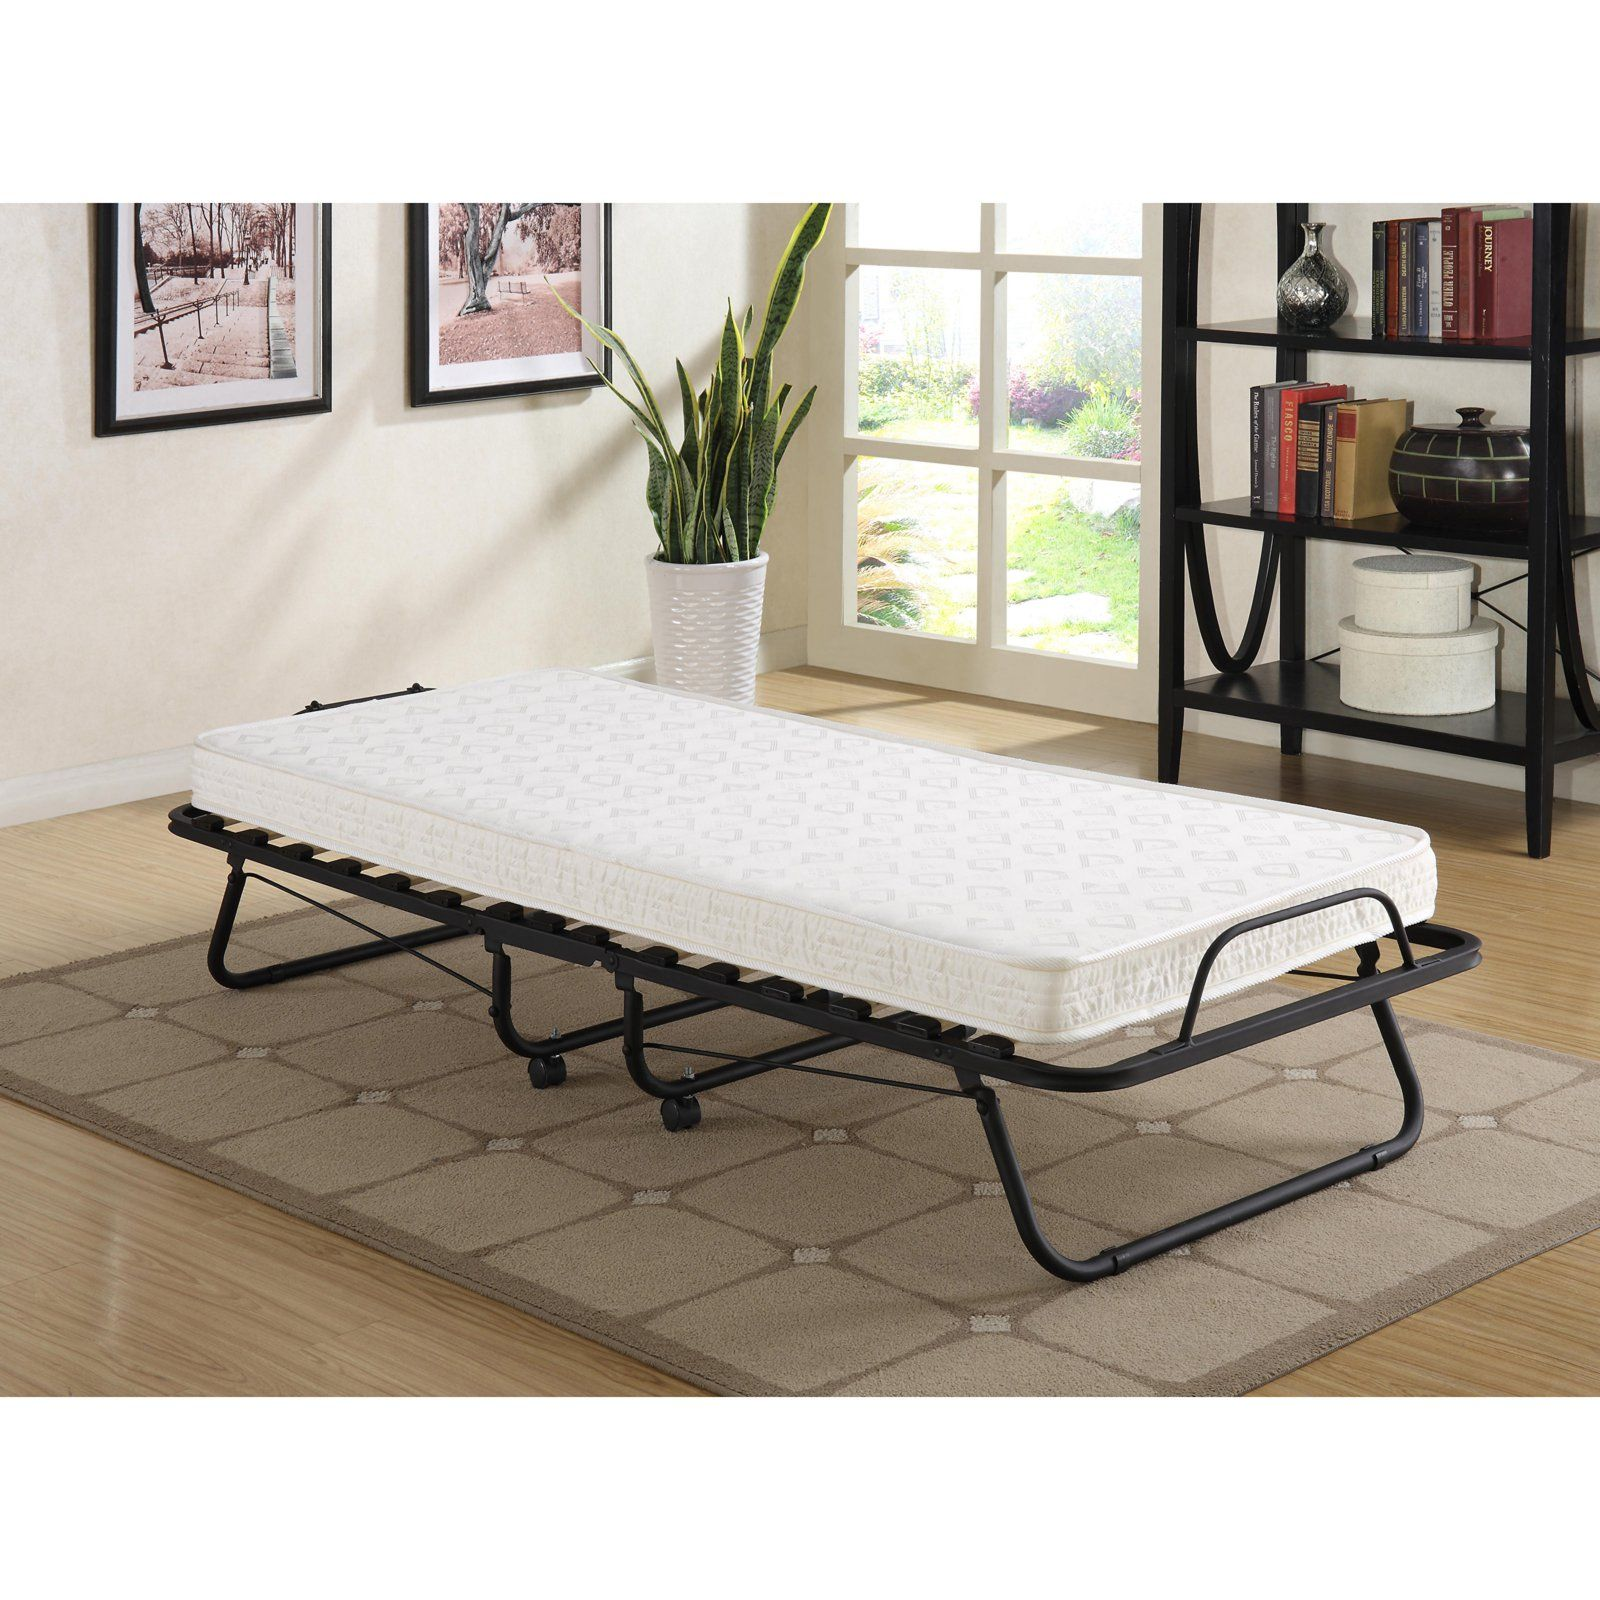 Primo International Uplifted Al1 Folding Cot Bed Foldable Bed